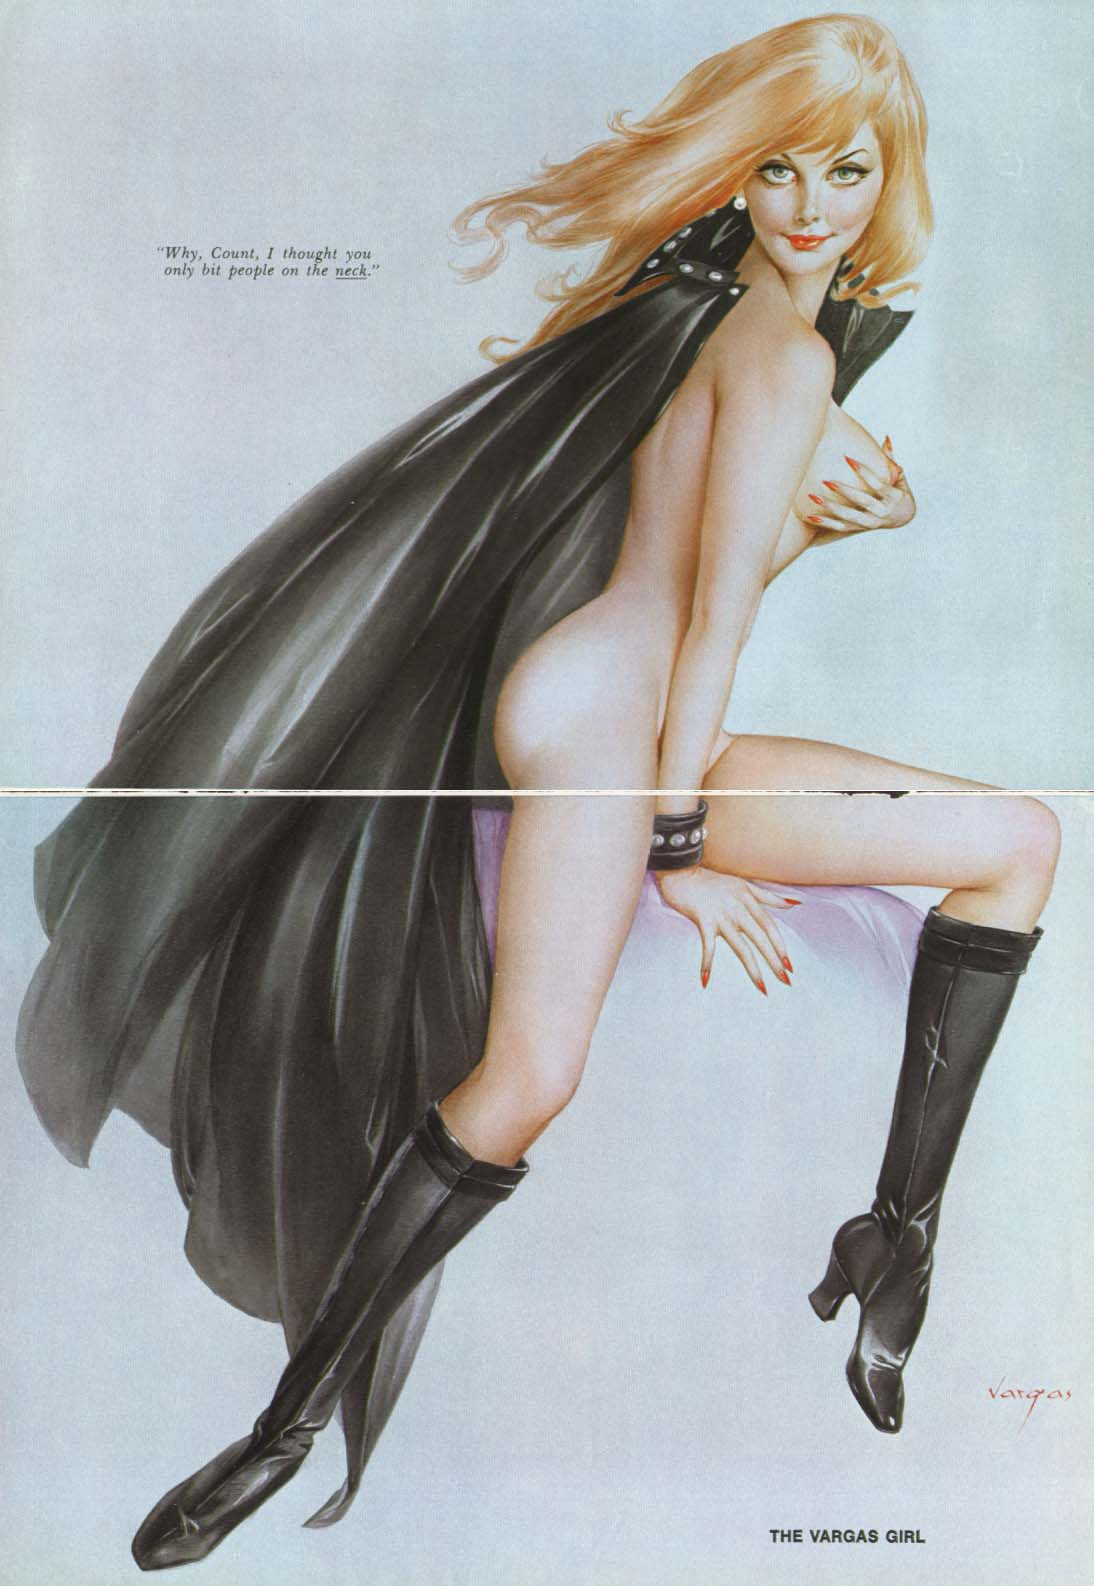 Image for Count thought you only bit the neck Vargas pin-up 1973